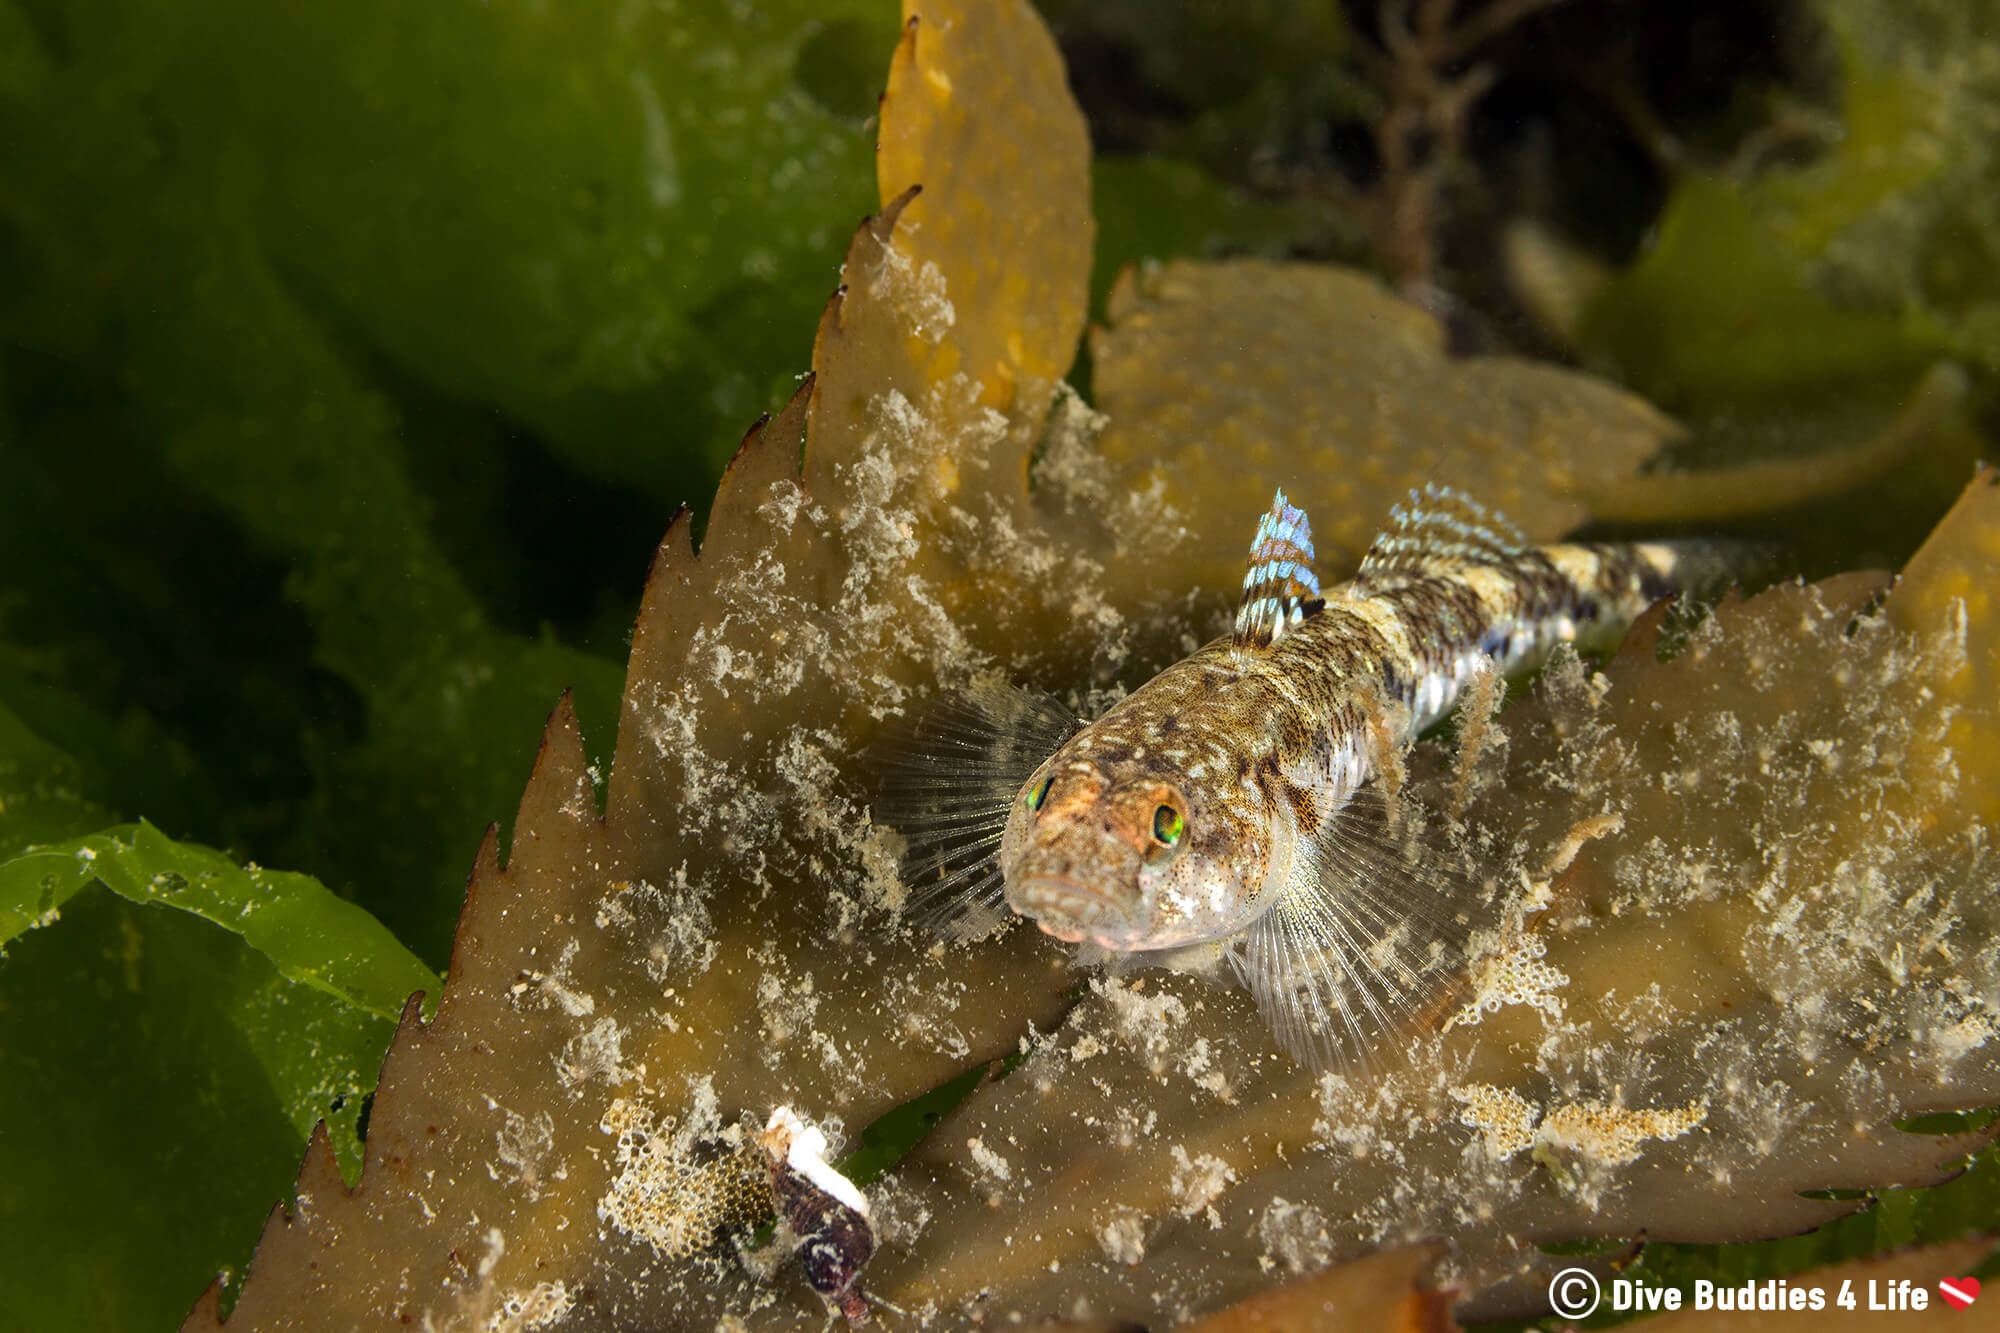 A Golby Fish On A Bed Of Kelp At The Carnac Shore Diving Site In Brittany, France